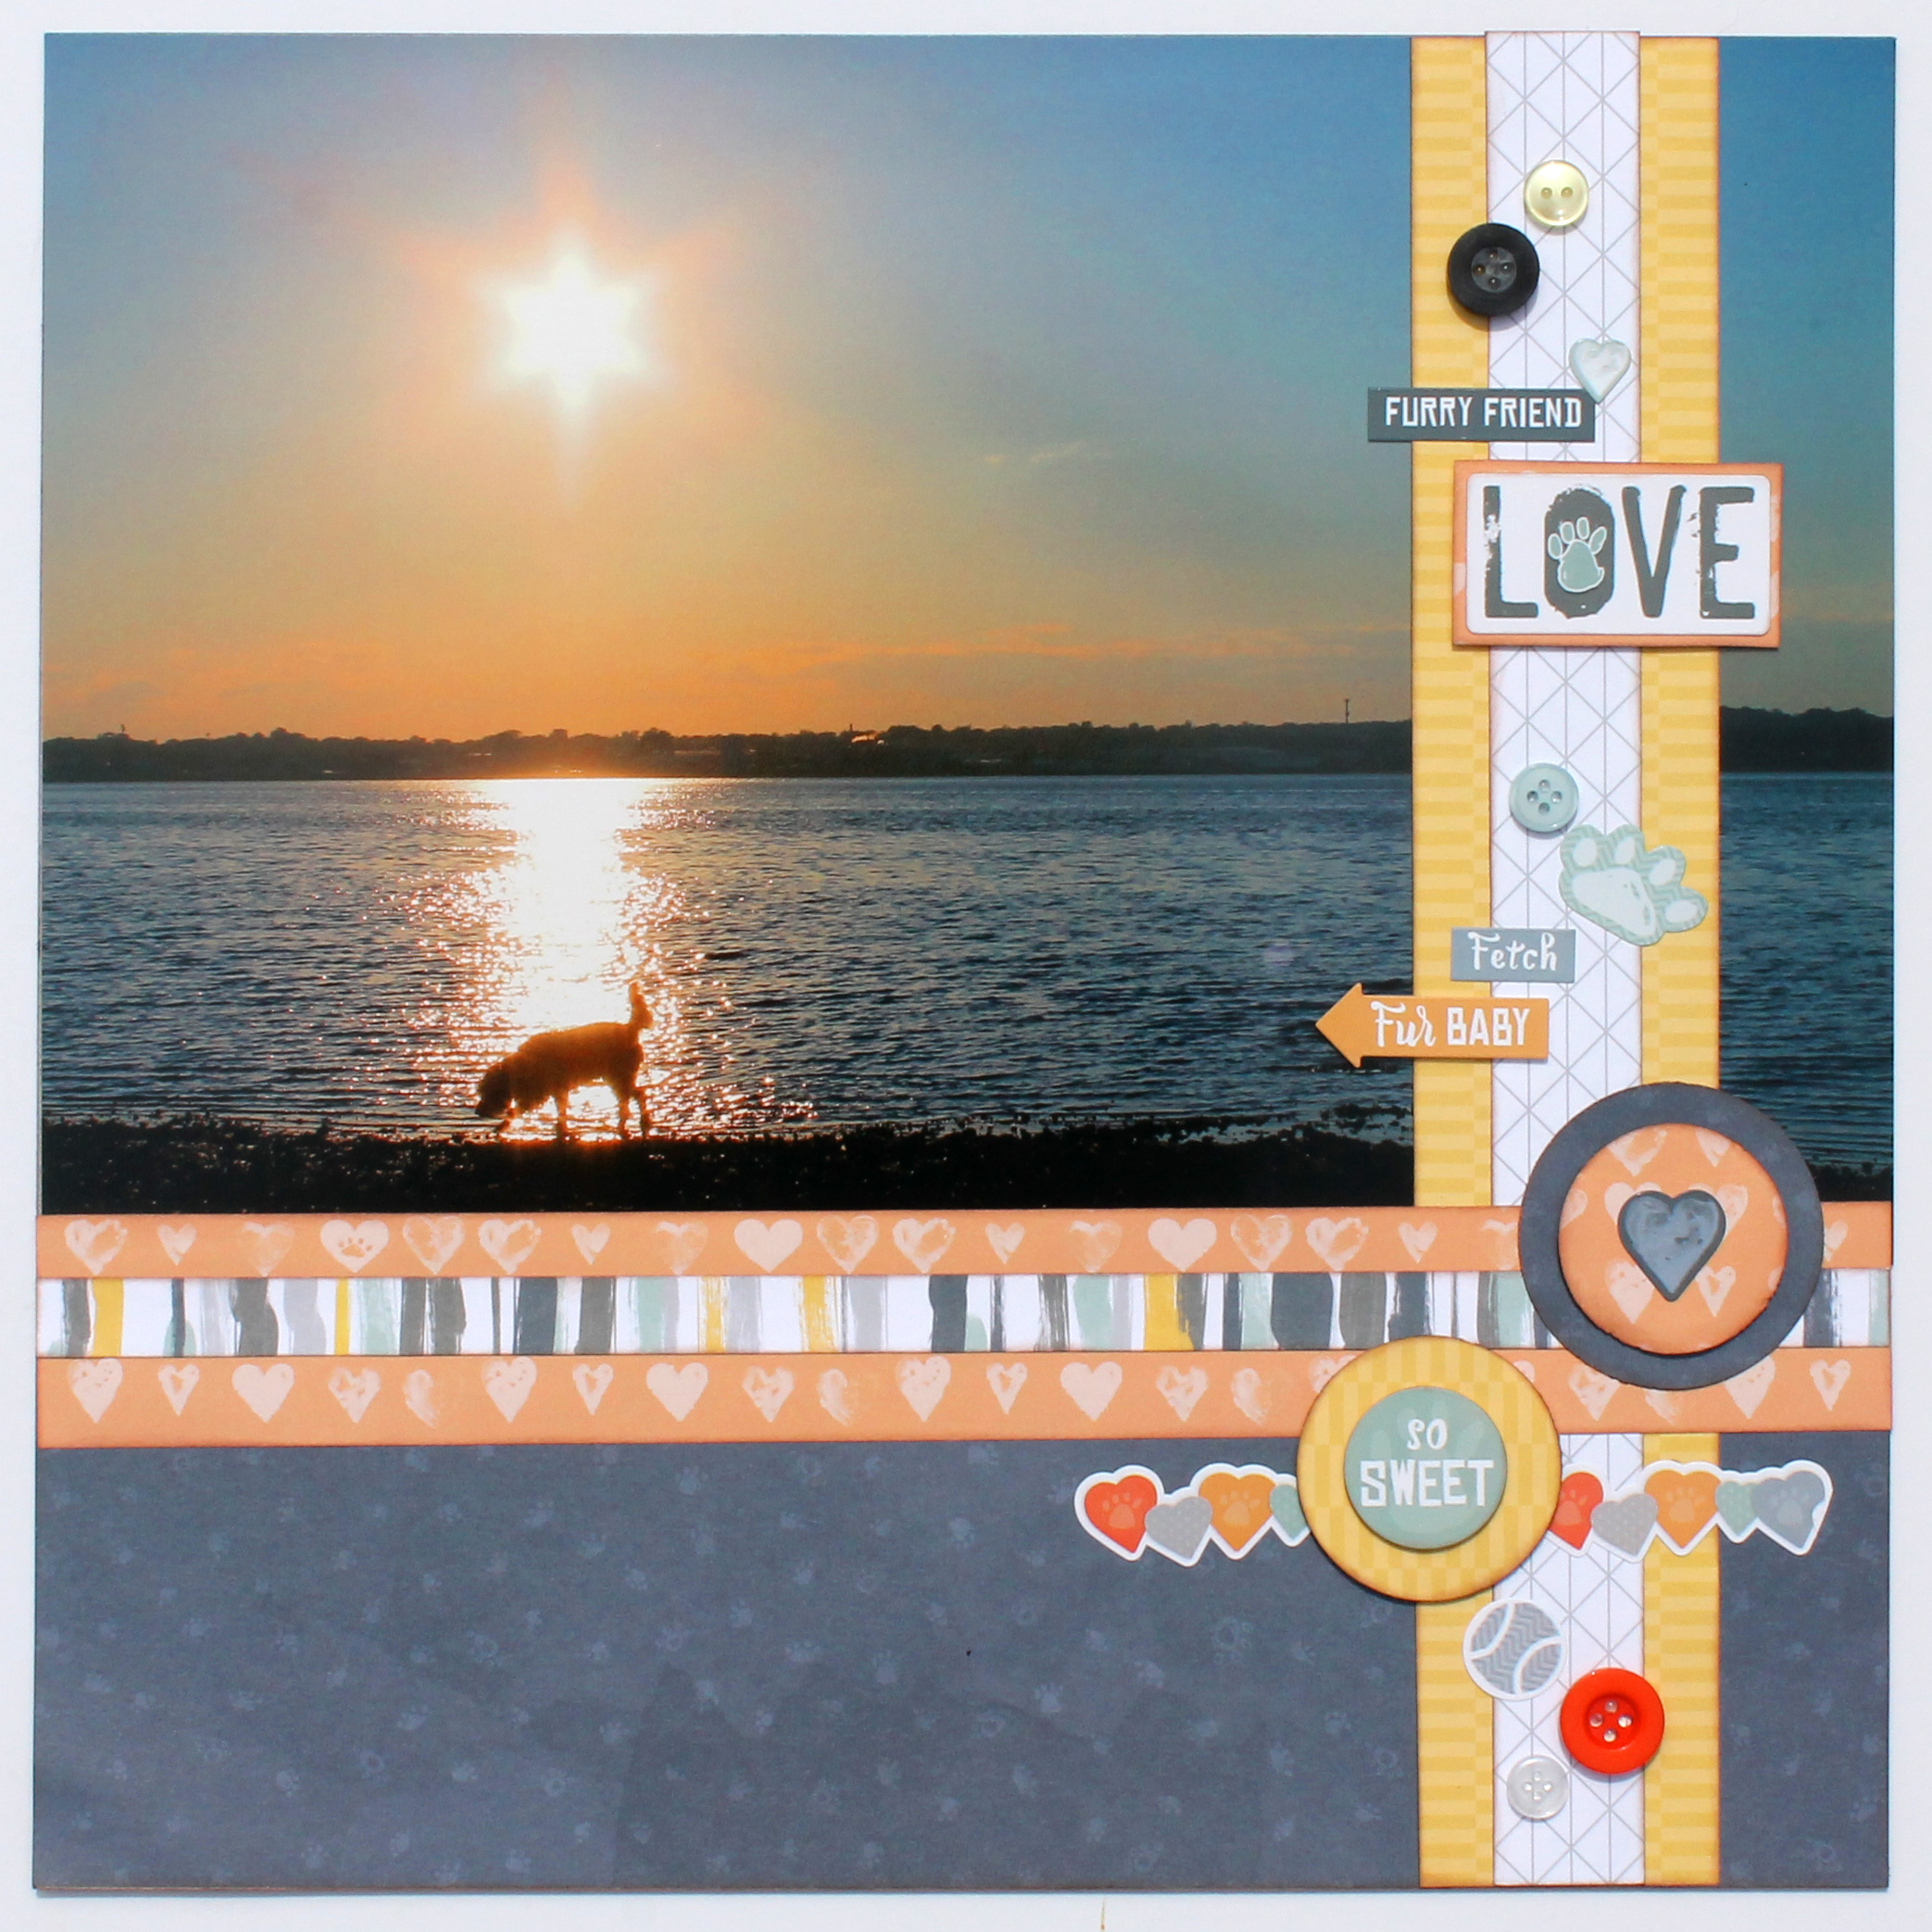 @csmscrapbooker @cmgroup @scrappychick101 Scrapbook layout using Creative Memories Fur Buddies collection. Animal layouts. Dog walking by a lake with the sun setting.